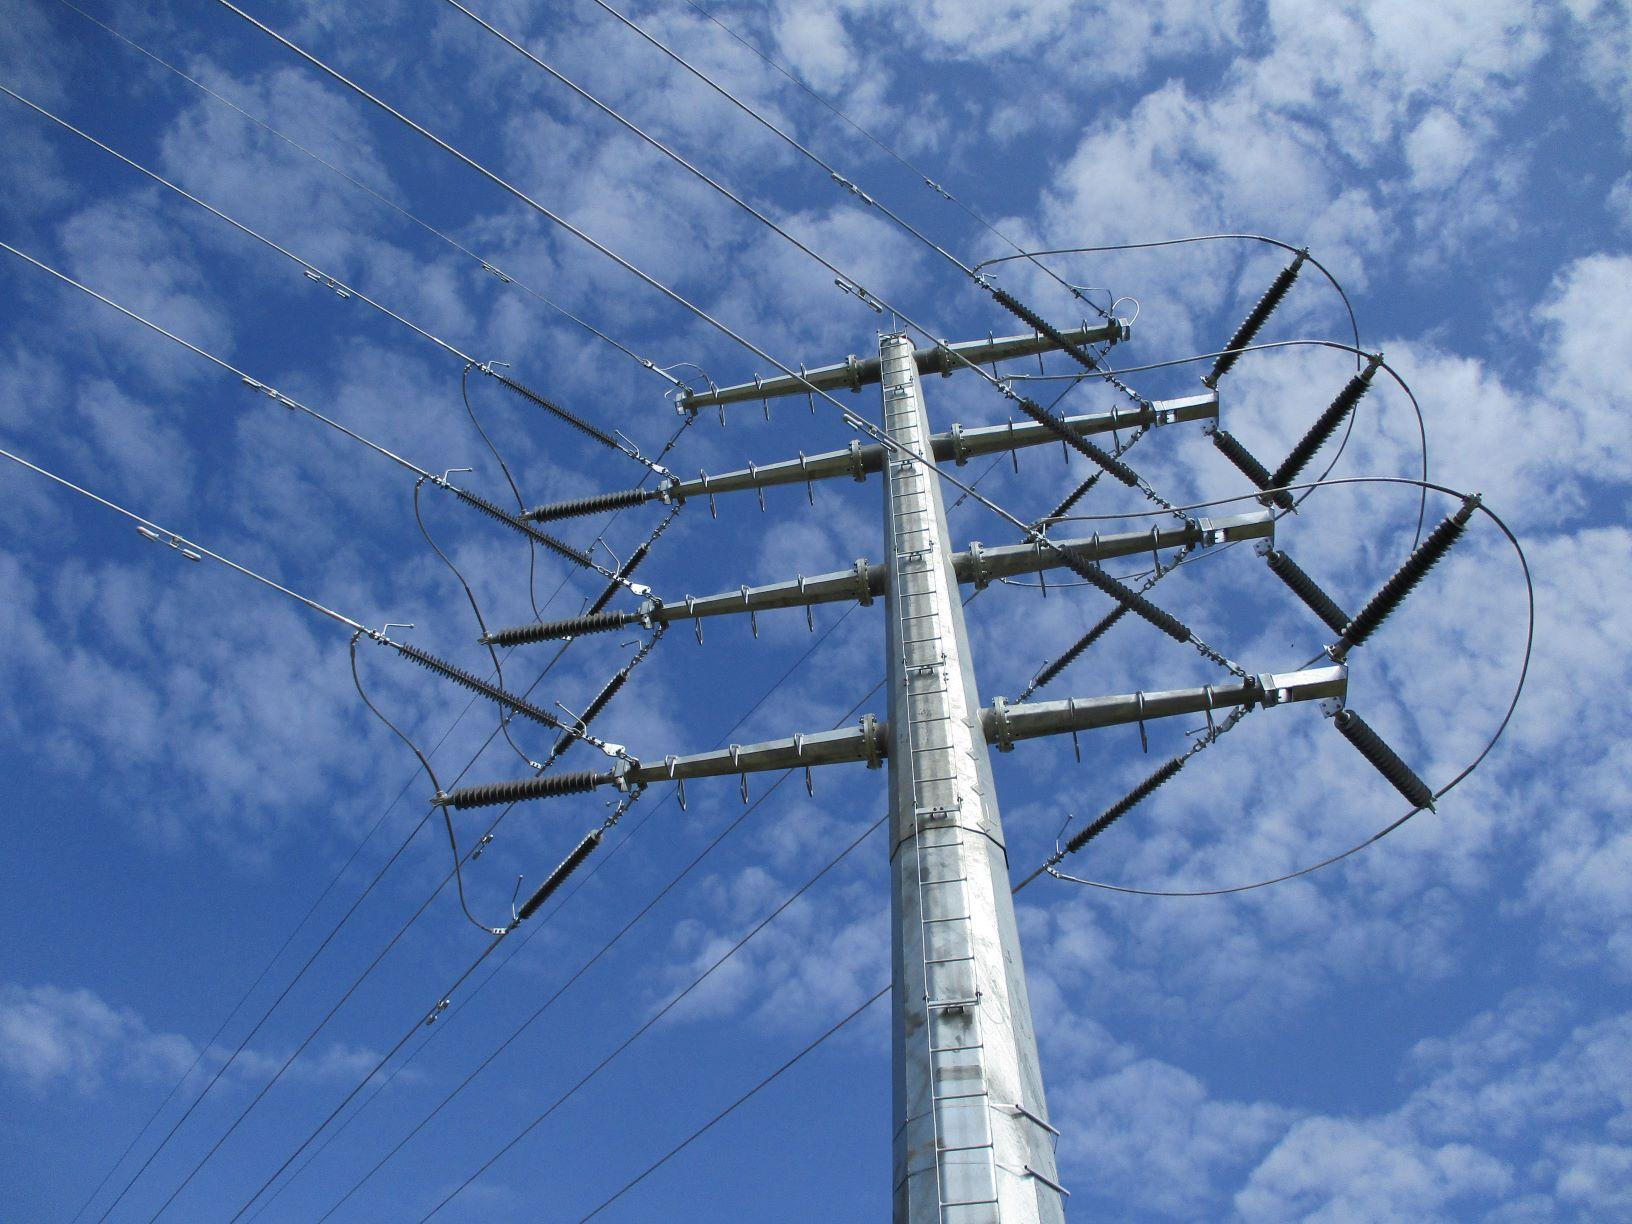 Lattice Type Towers For Power Transmission And Distribution Project